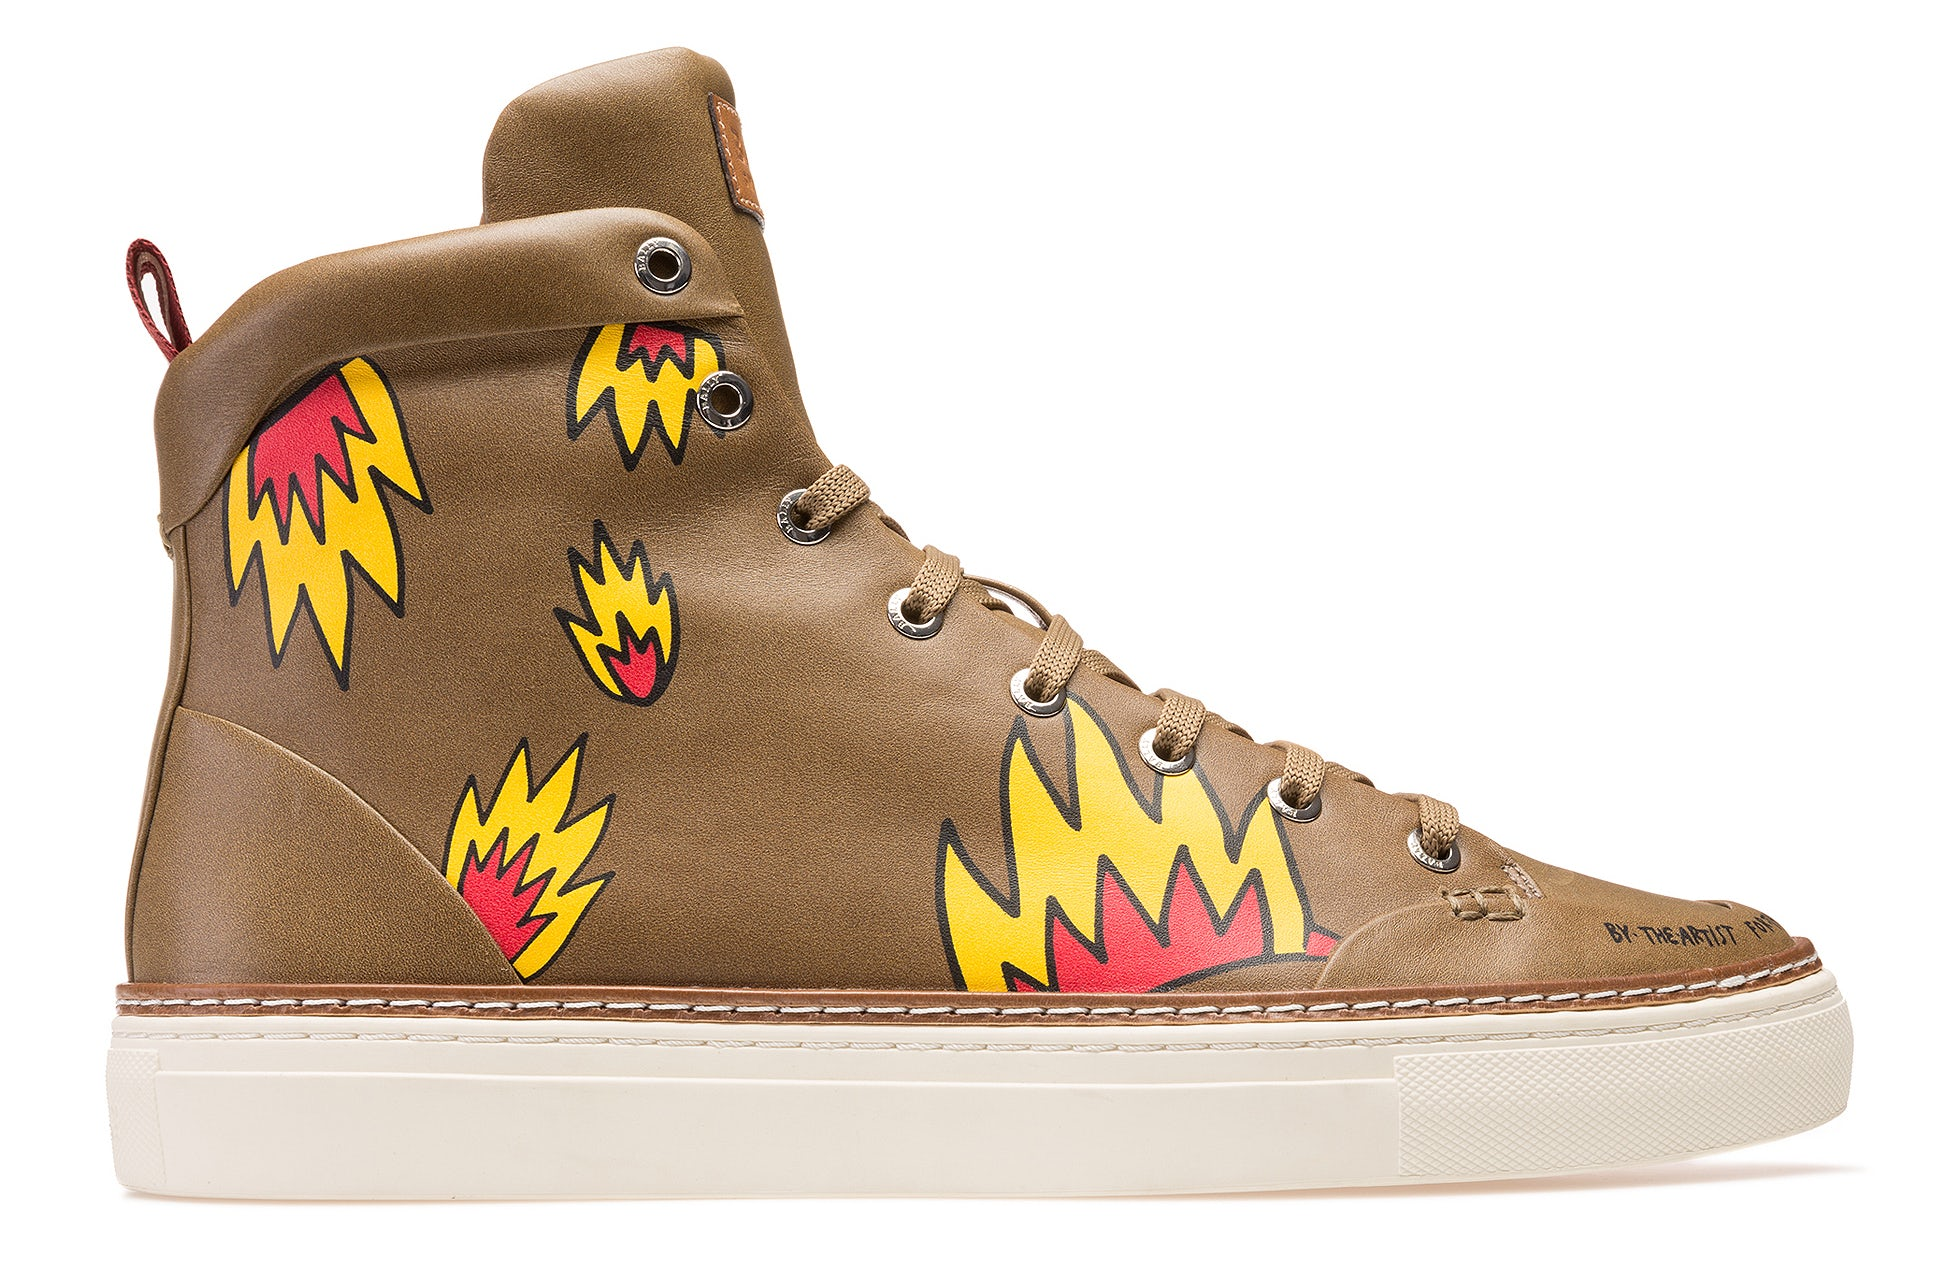 Bally x Swizz Beatz men's Hercules Shoe | Source: Courtesy